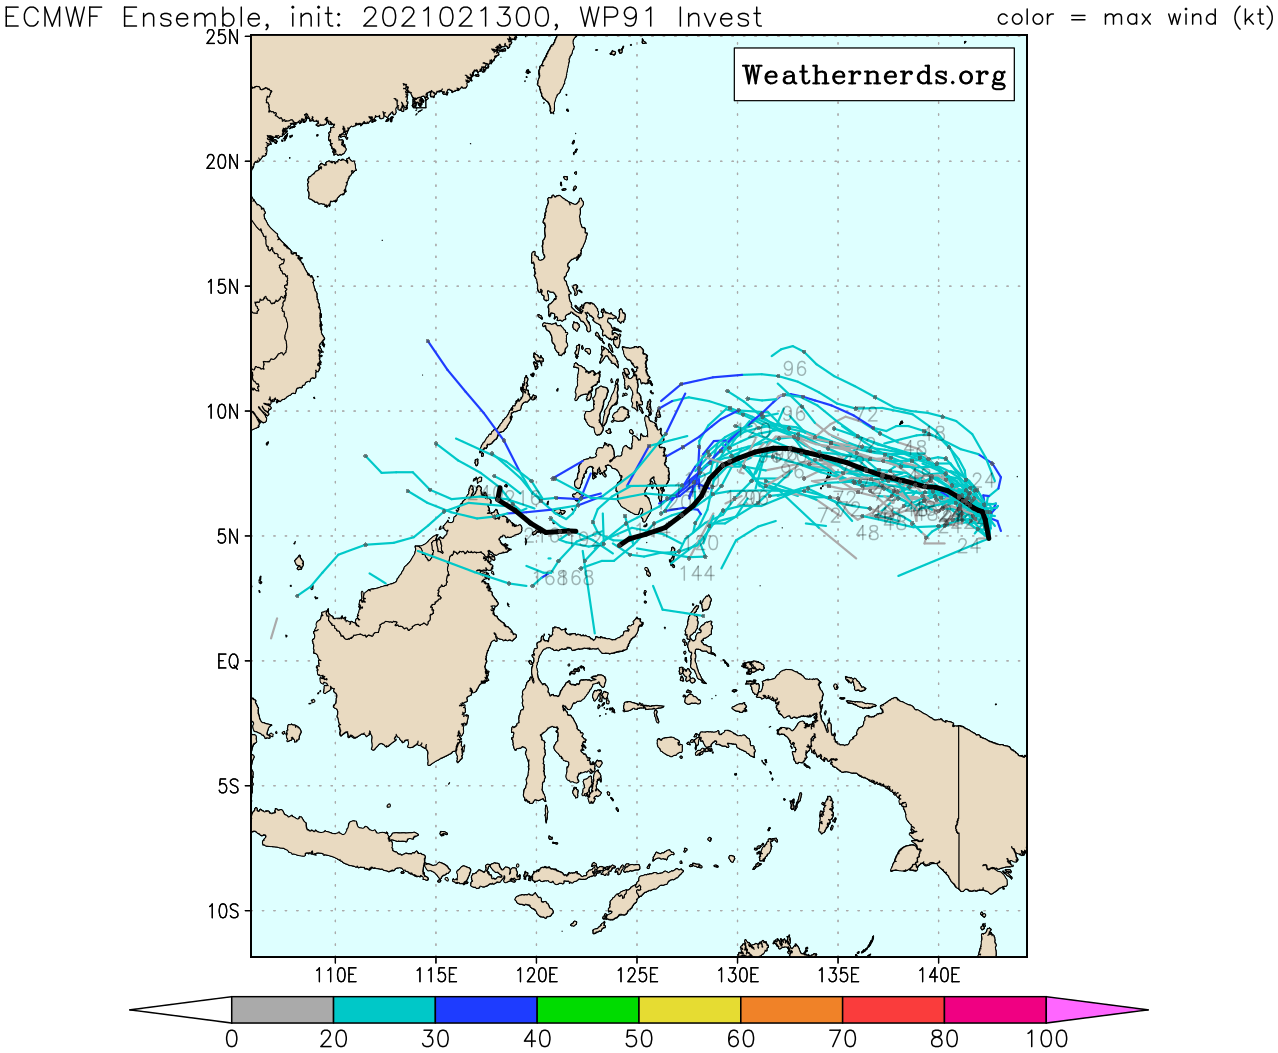 INVEST 91W. UPPER LEVEL ANALYSIS INDICATES INVEST  91W IS IN A FAVORABLE ENVIRONMENT FOR POTENTIAL TROPICAL DEVELOPMENT  WITH GOOD WESTWARD AND NORTHWARD OUTFLOW, LOW (10-15KT) VERTICAL  WIND SHEAR, AND WARM (29-30C) SEA SURFACE TEMPERATURES. GLOBAL  MODELS ARE IN AGREEMENT THAT INVEST 91W WILL TRACK WESTWARD WITH  POSSIBLE CONSOLIDATION OVER THE NEXT 5 DAYS.